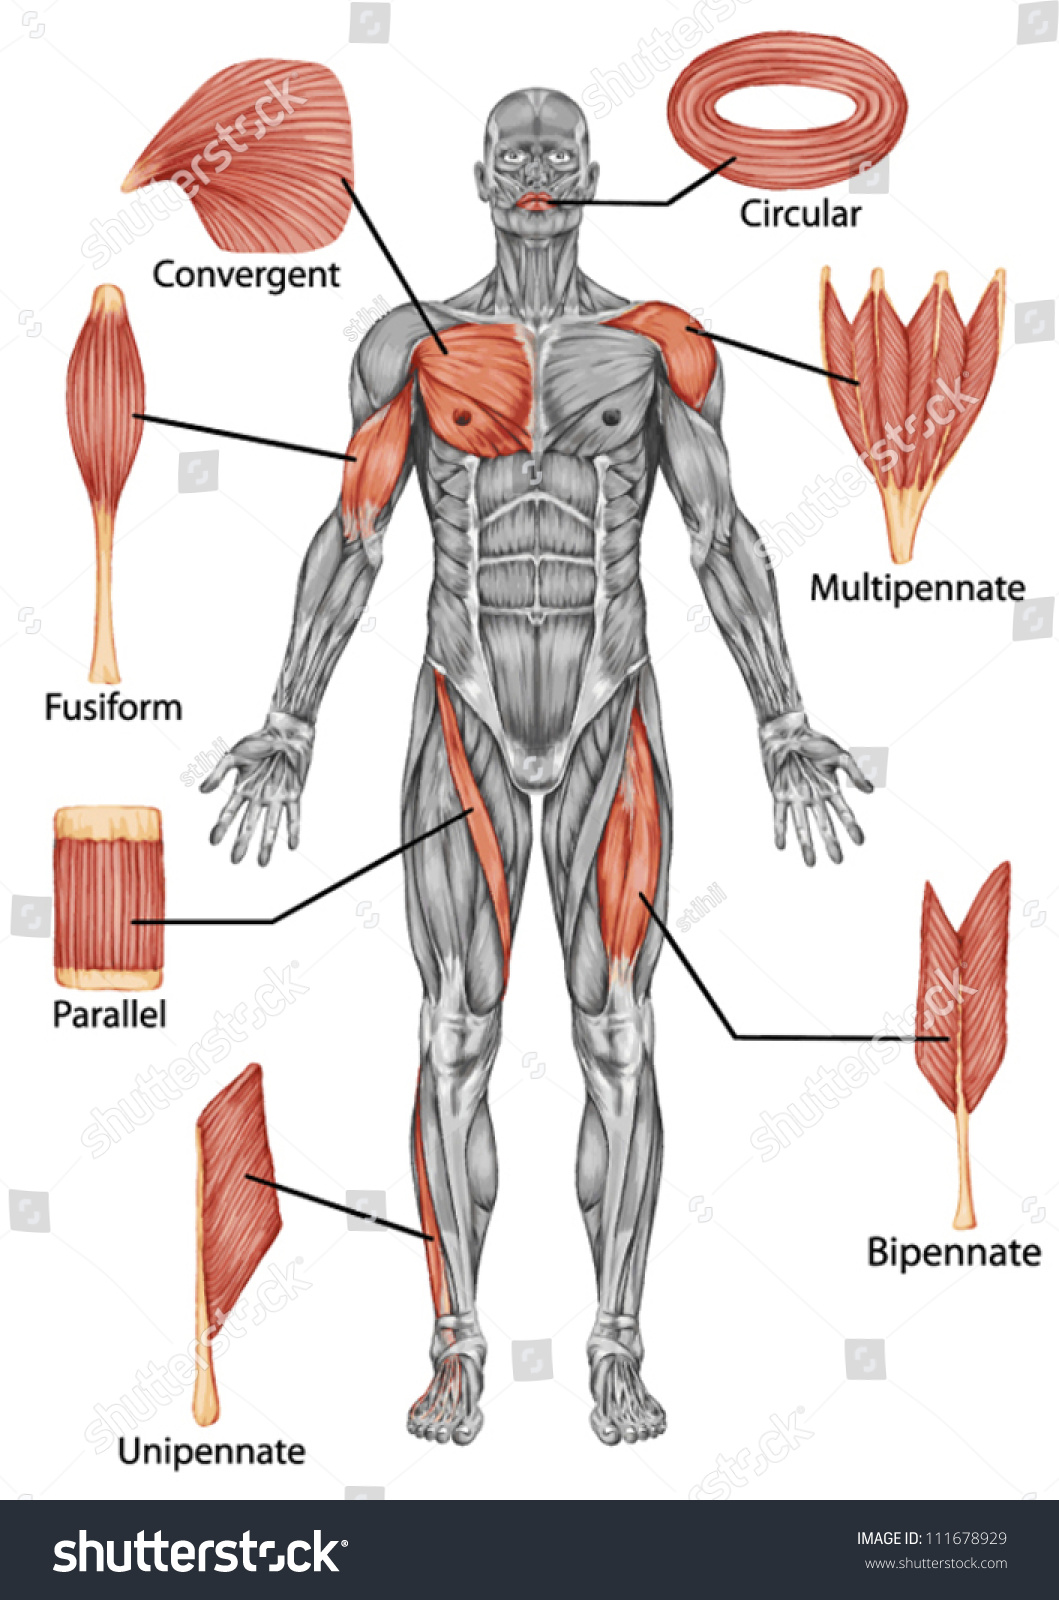 muscle of the body diagram – lickclick, Muscles